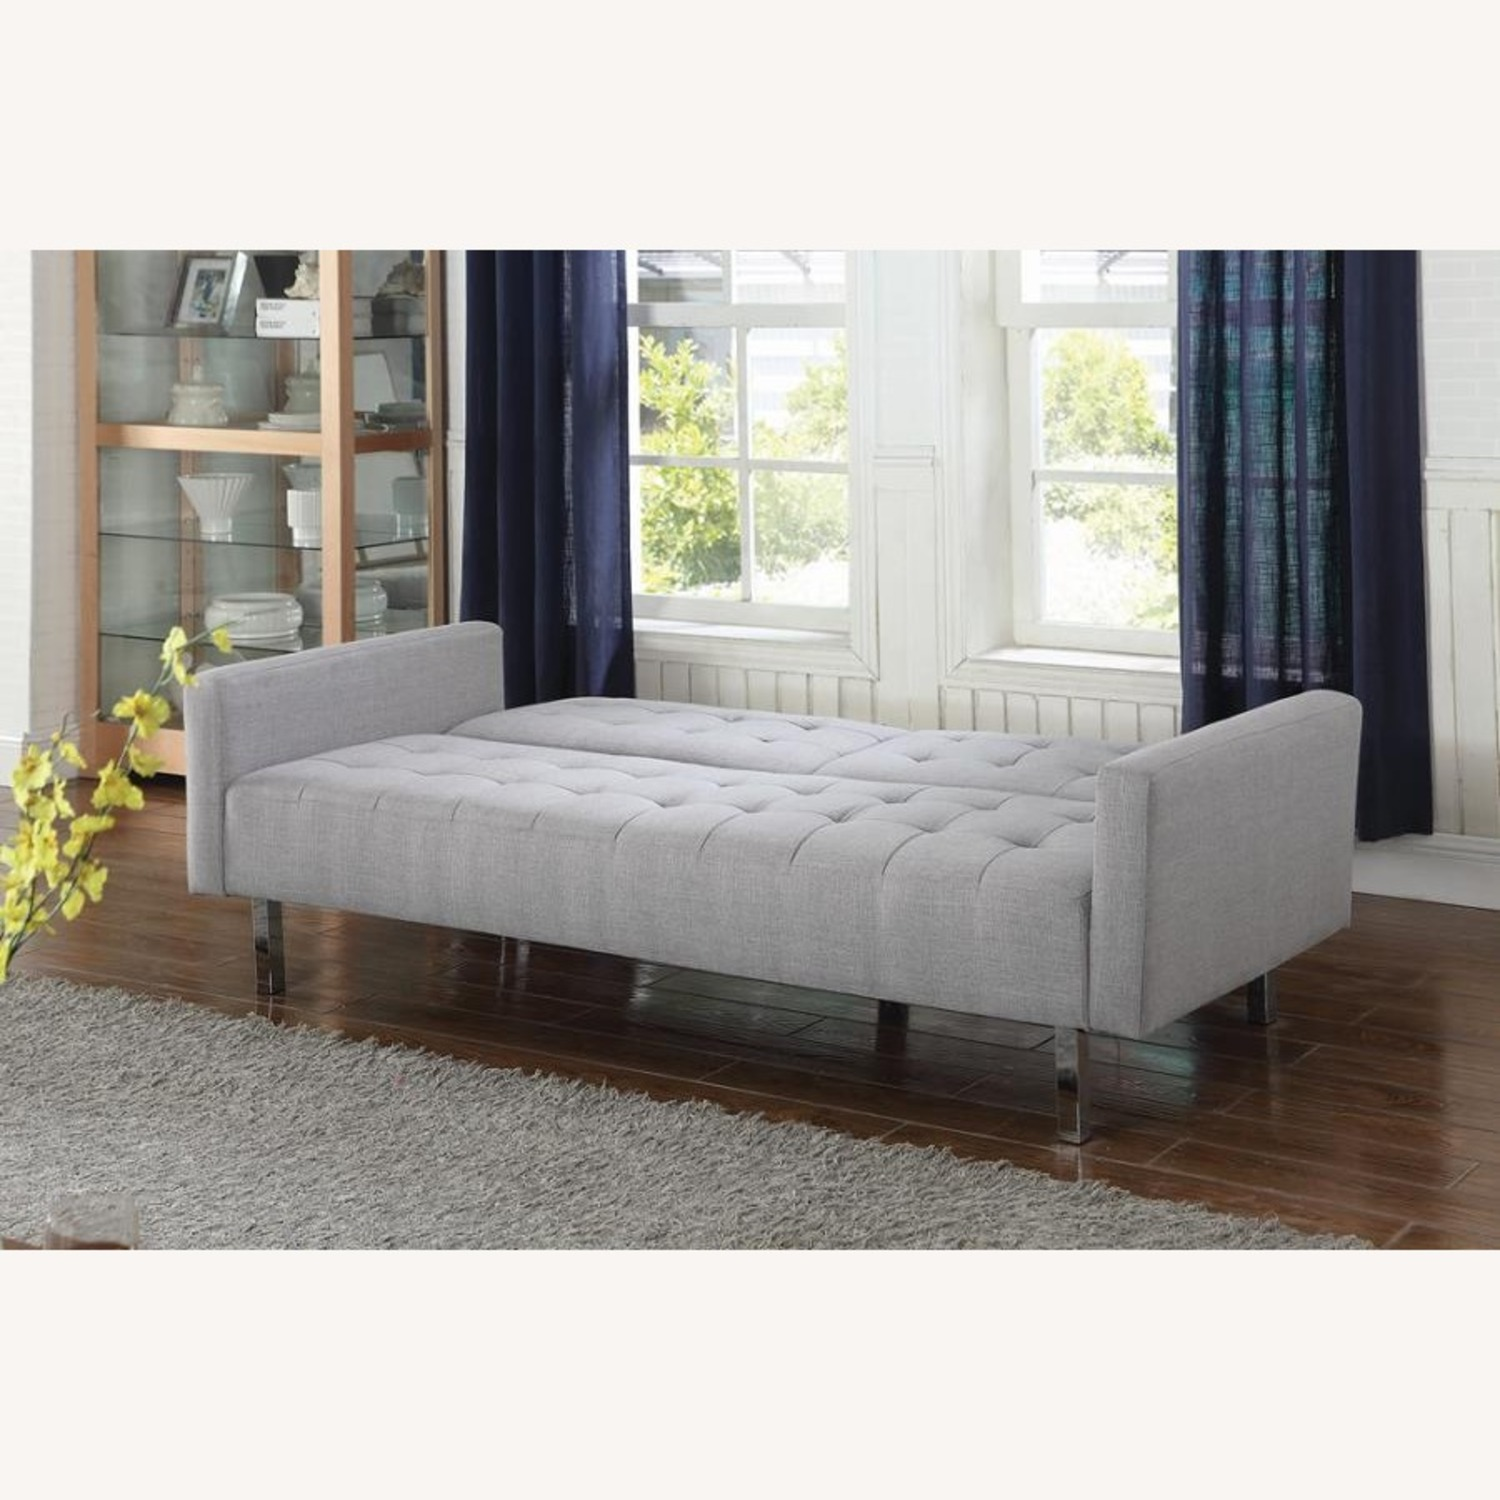 Modern Button Tufted Sofa Bed In Light Grey Fabric - image-3